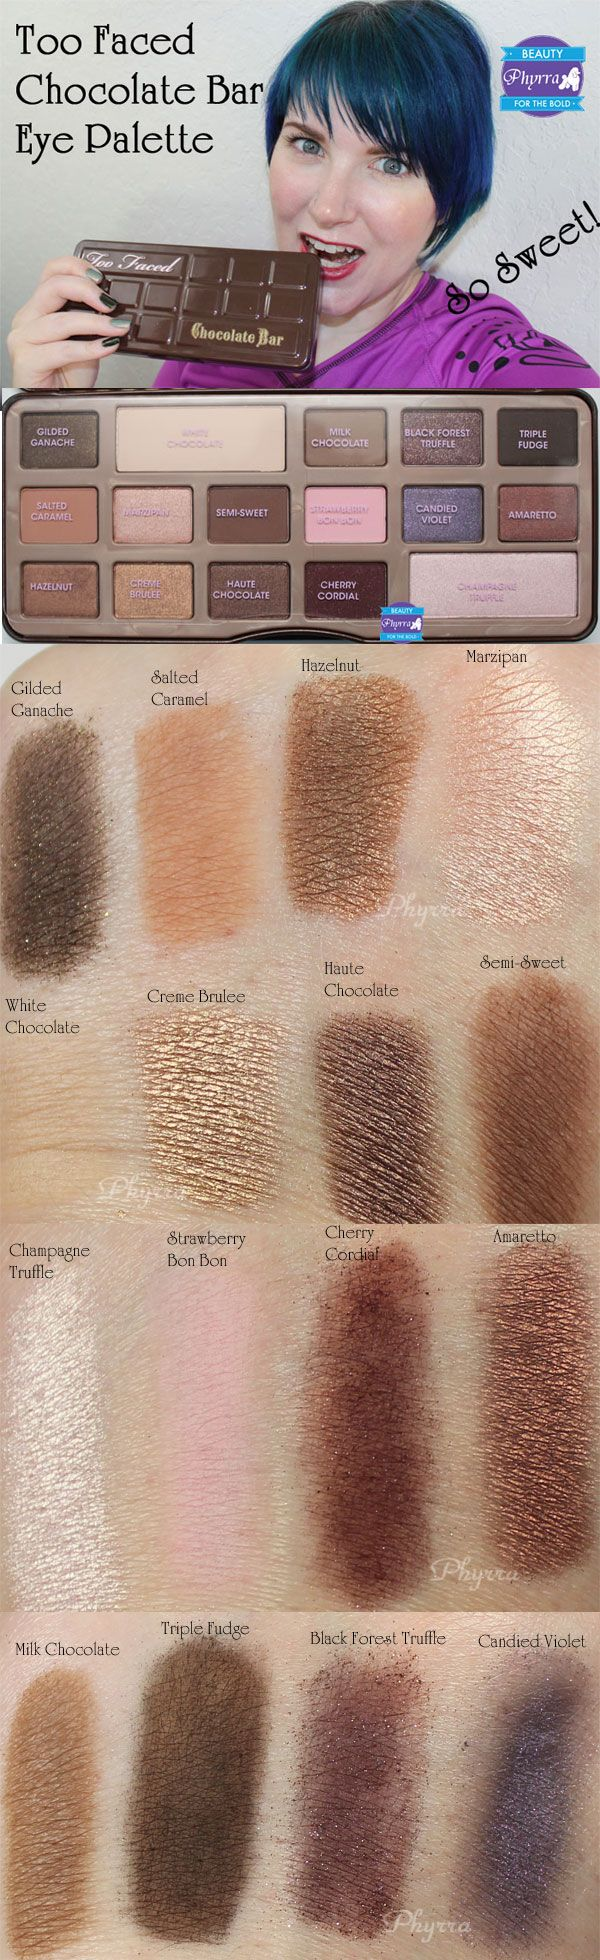 Too Faced the Chocolate Bar Palette. IS THIS REAL?!?